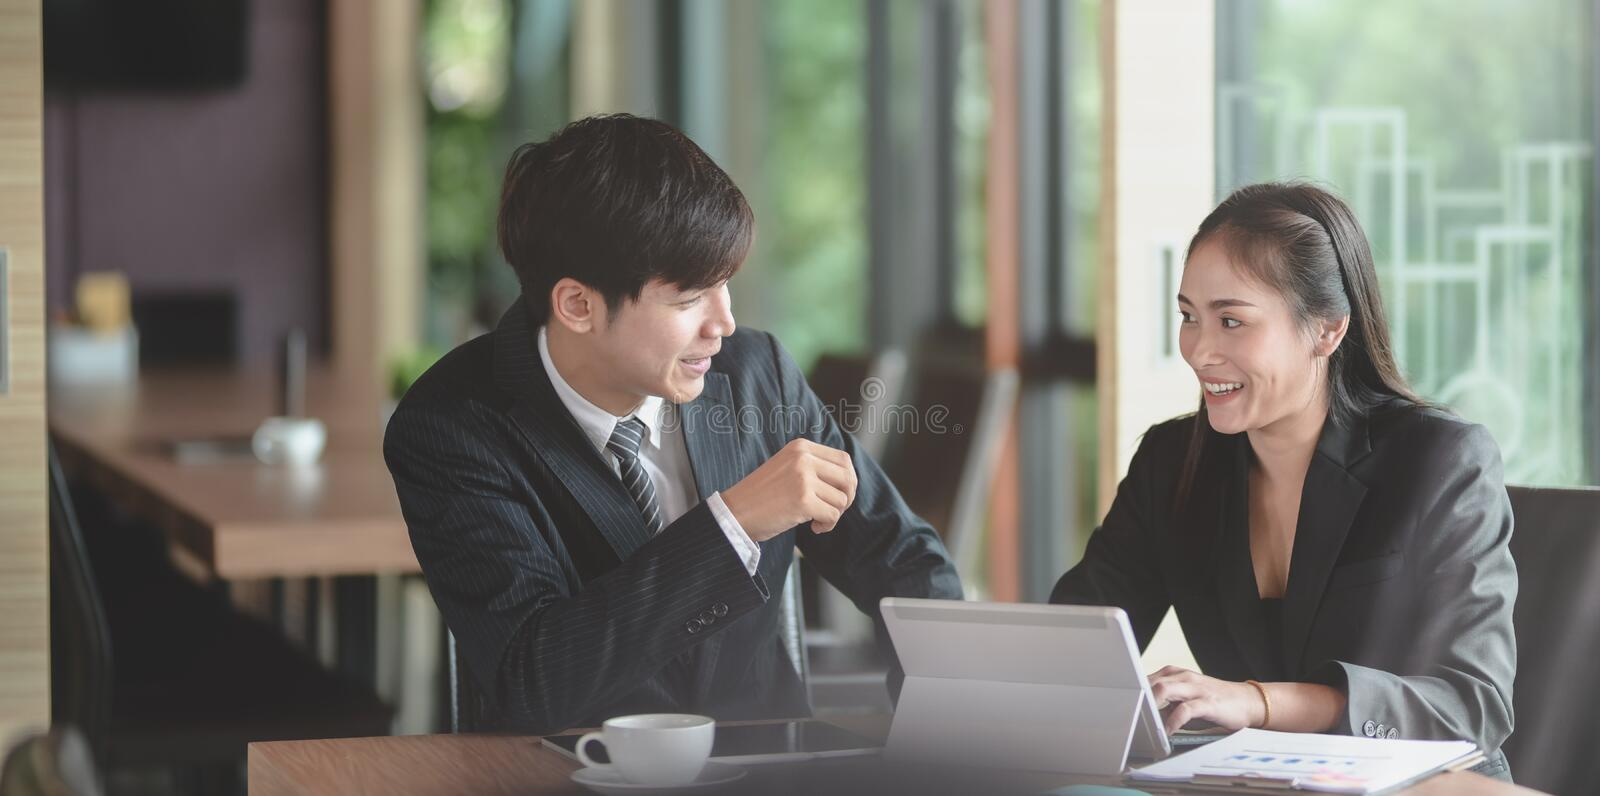 Group of professional business people discussing the project together royalty free stock photography